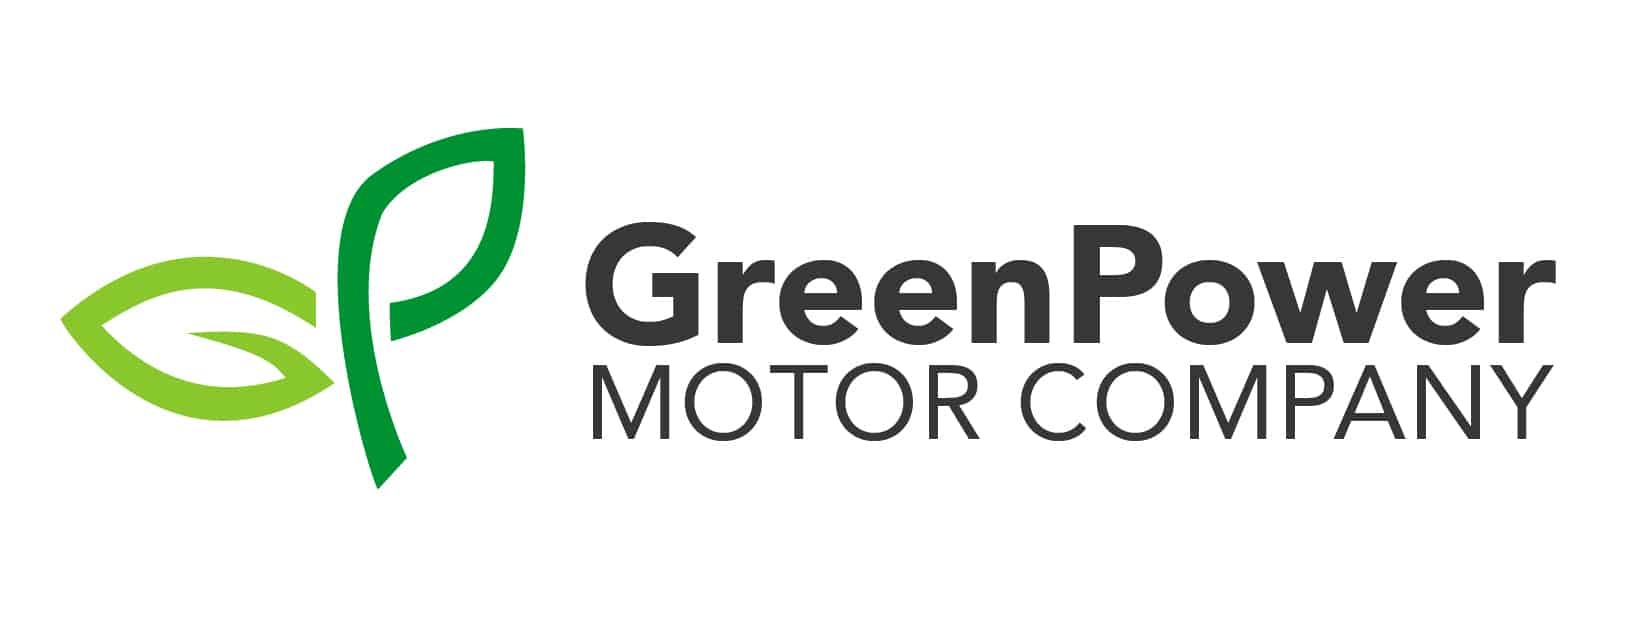 stnonline.com - GreenPower Adds ABC Bus as Authorized Dealer in NY Market - School Transportation News